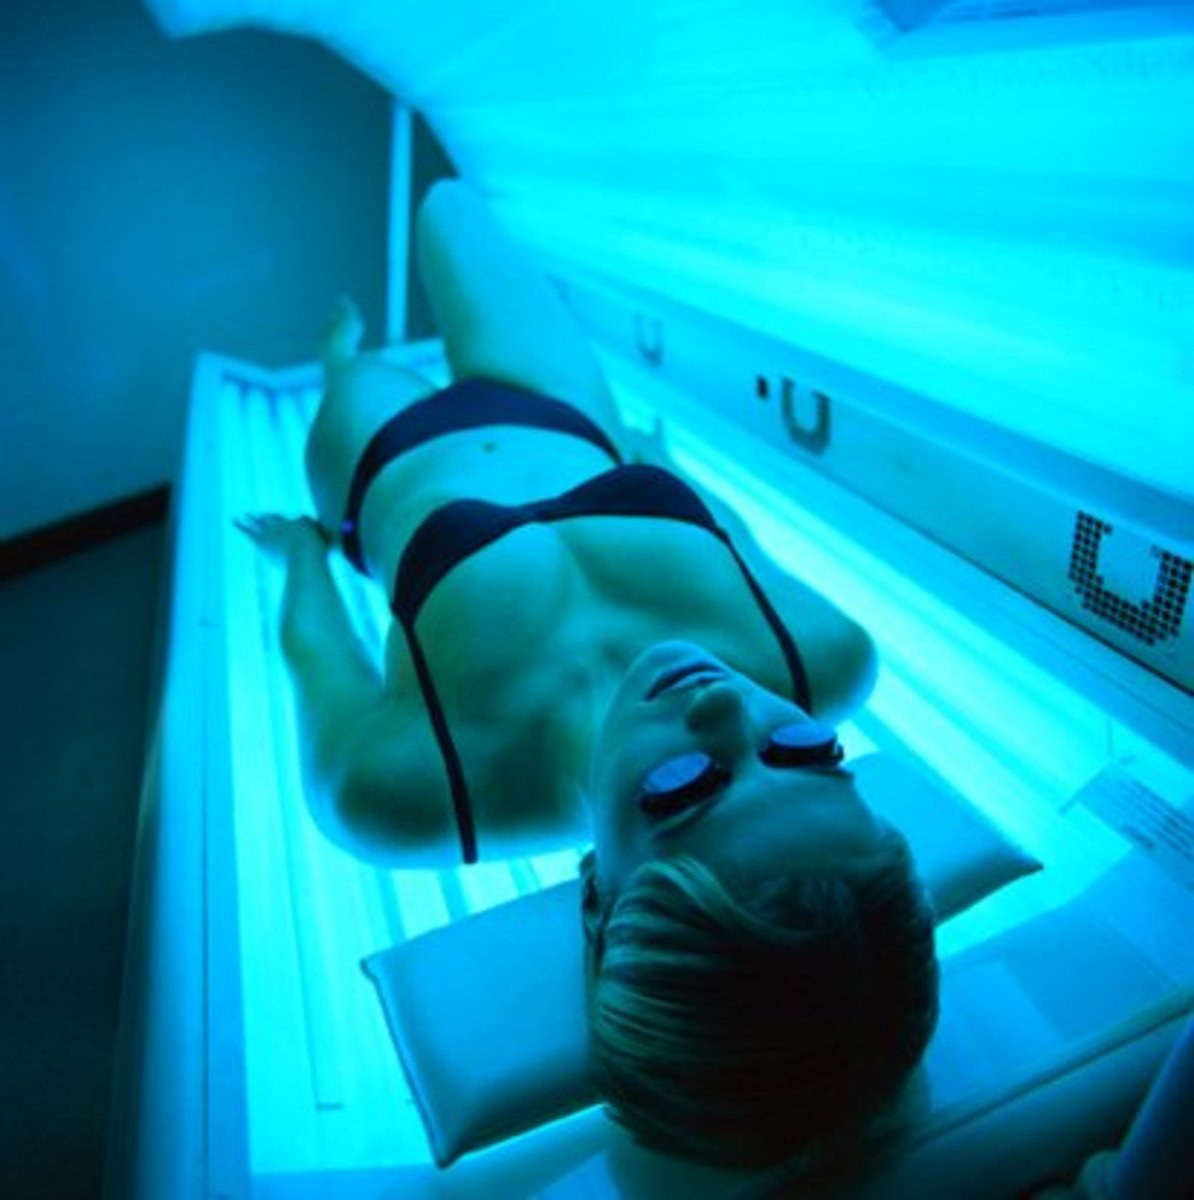 Burning is not tanning, so be extra careful whenever you use bed tanning.